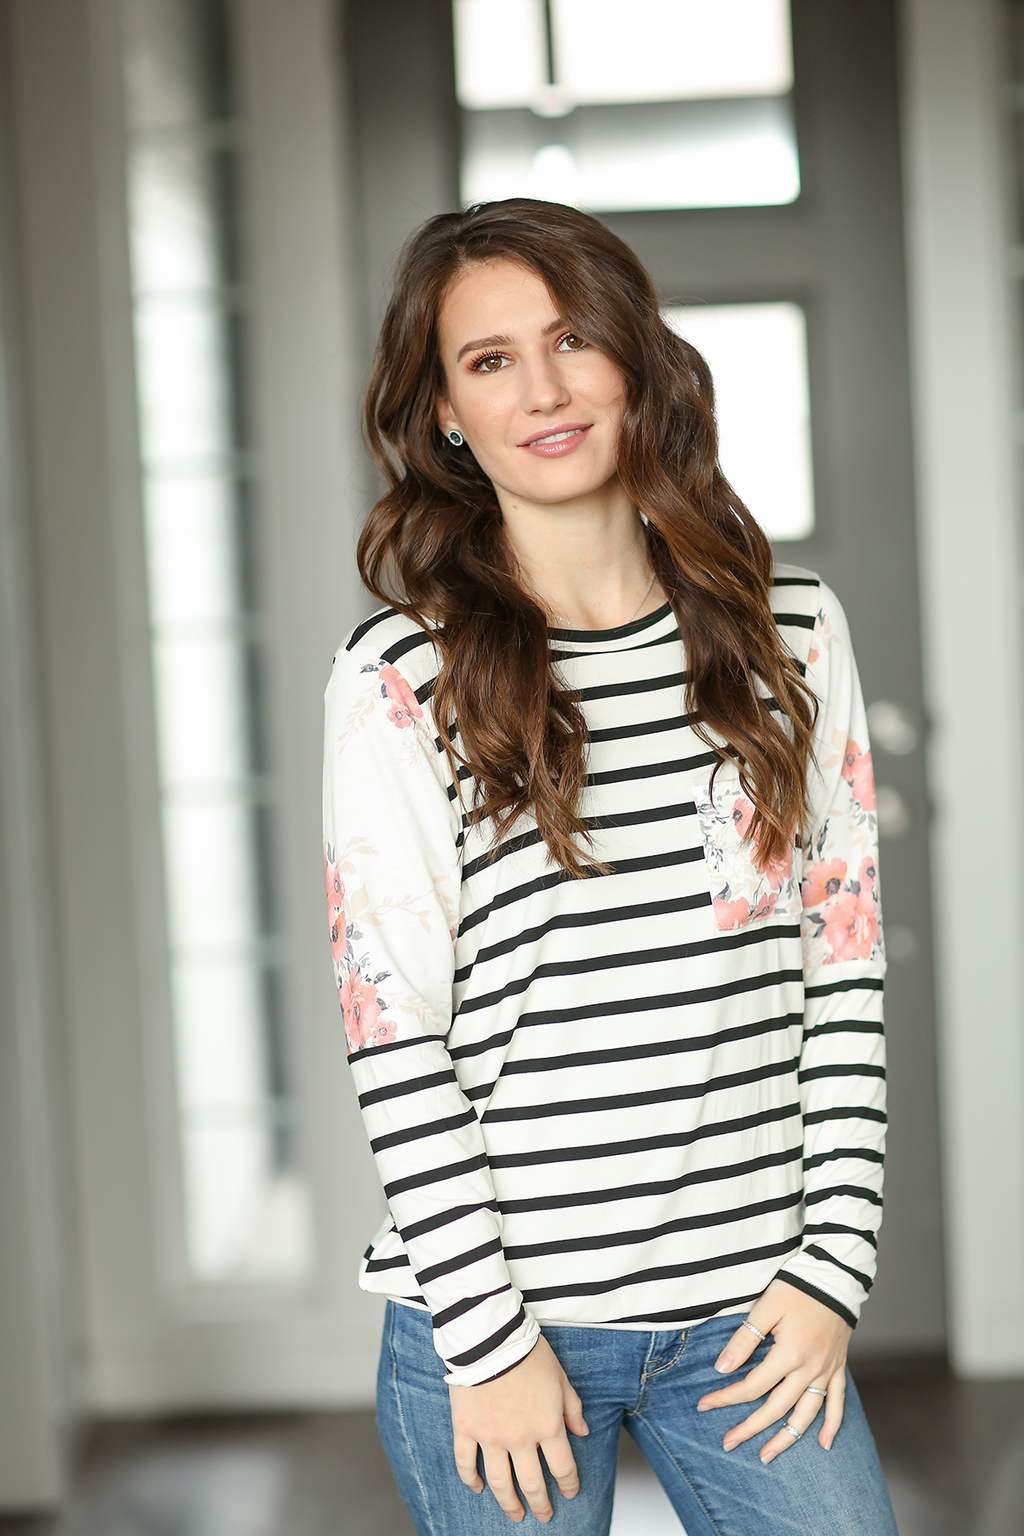 Just About Right Striped Top With Floral Details